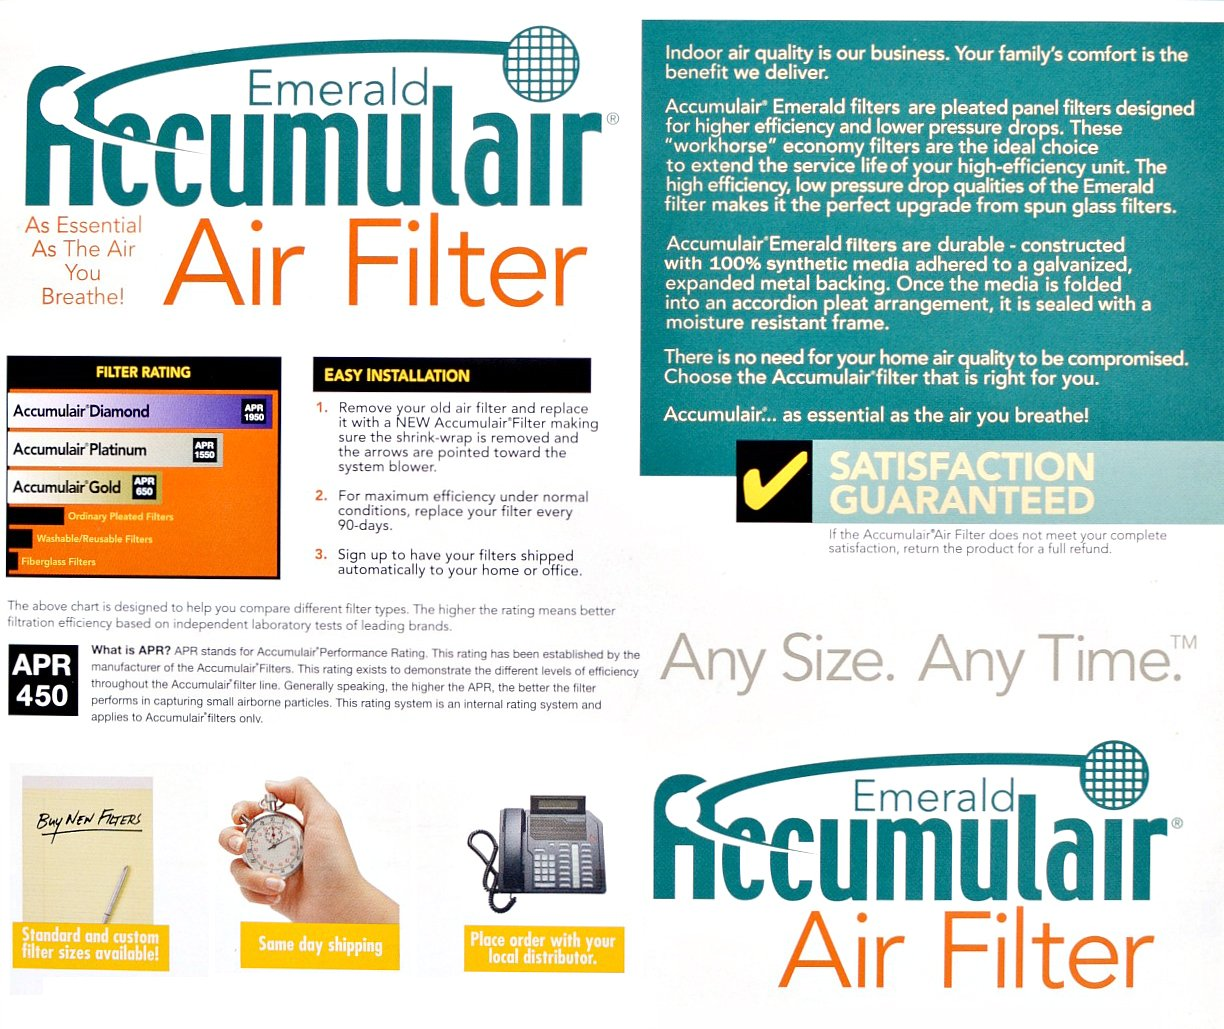 Accumulair FC16X36_4 MERV 6 Rating Air Filter/Furnace Filters, 16x36x1 (15.5 x 35.5) - 4 pack